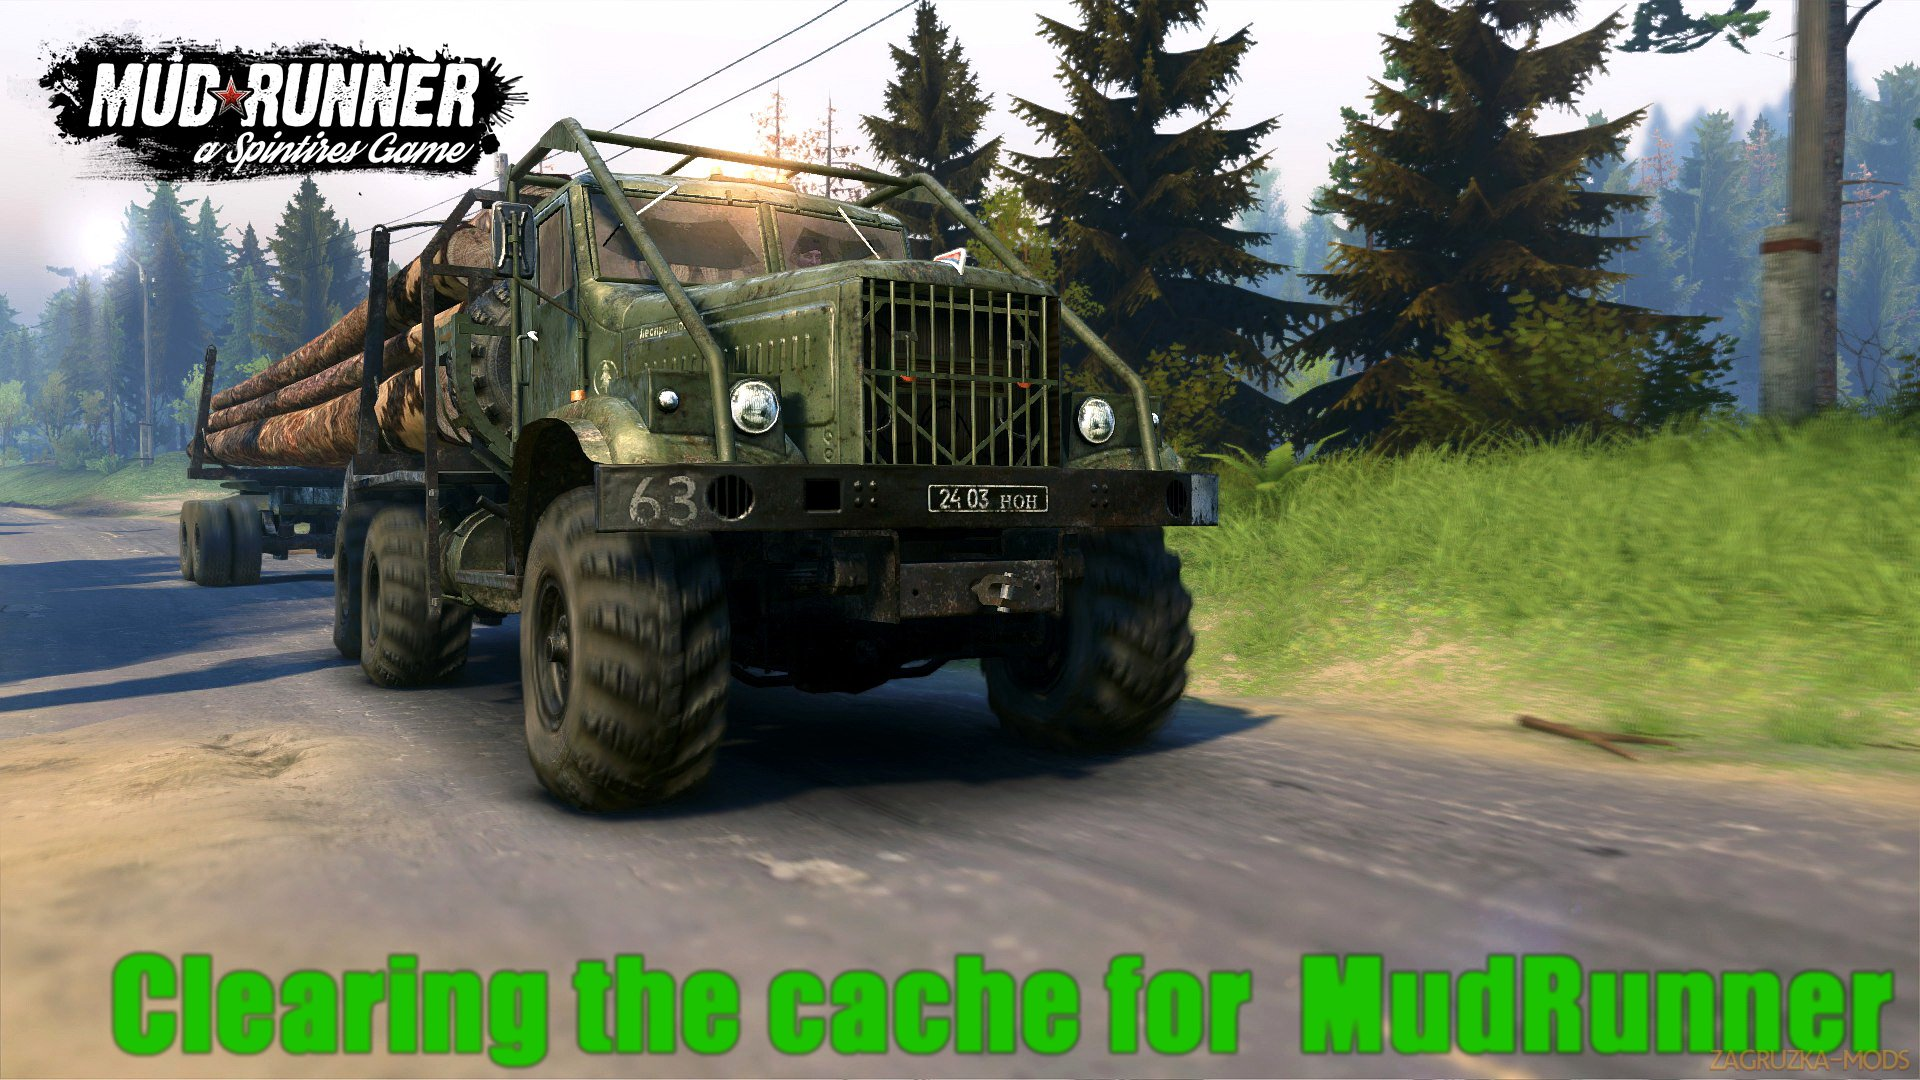 Clearing the cache v1.1 for Spin Tires: MudRunner (v26.10.17)